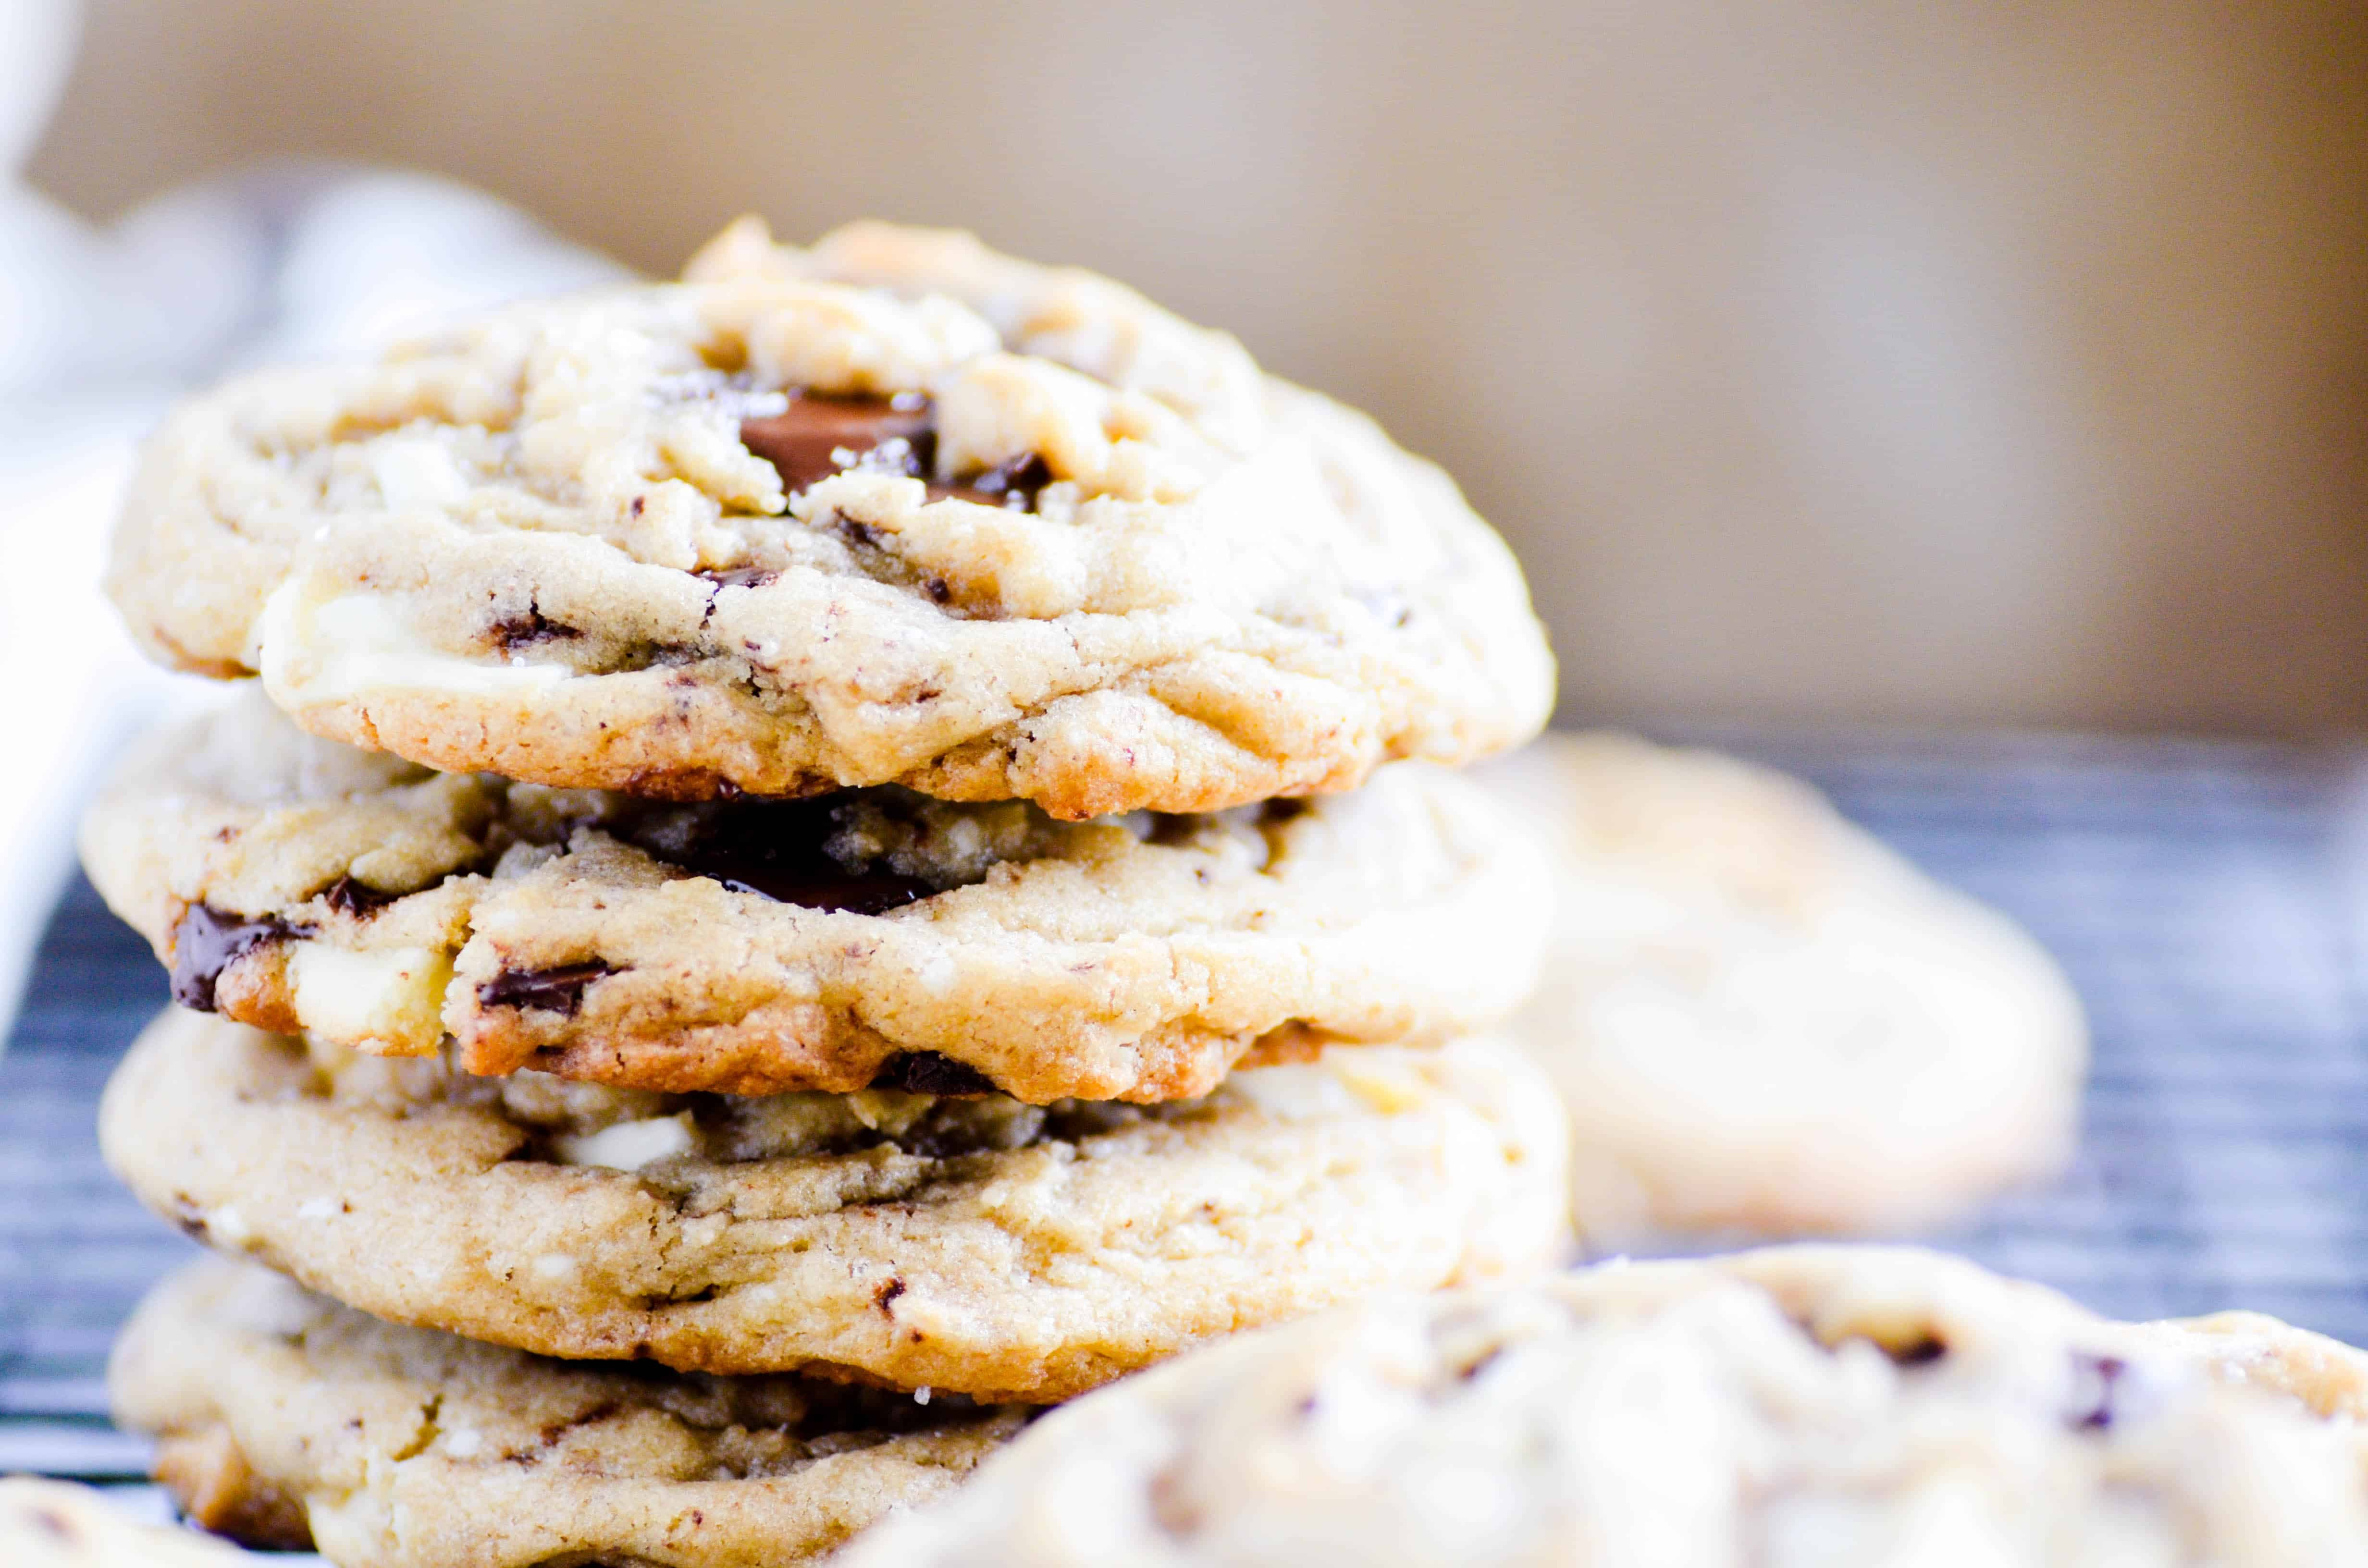 I took my Thick and Chewy Brown Sugar Chocolate Chip Cookies and made them slightly less thick with a double dose of chocolate (and white chocolate) chunks!